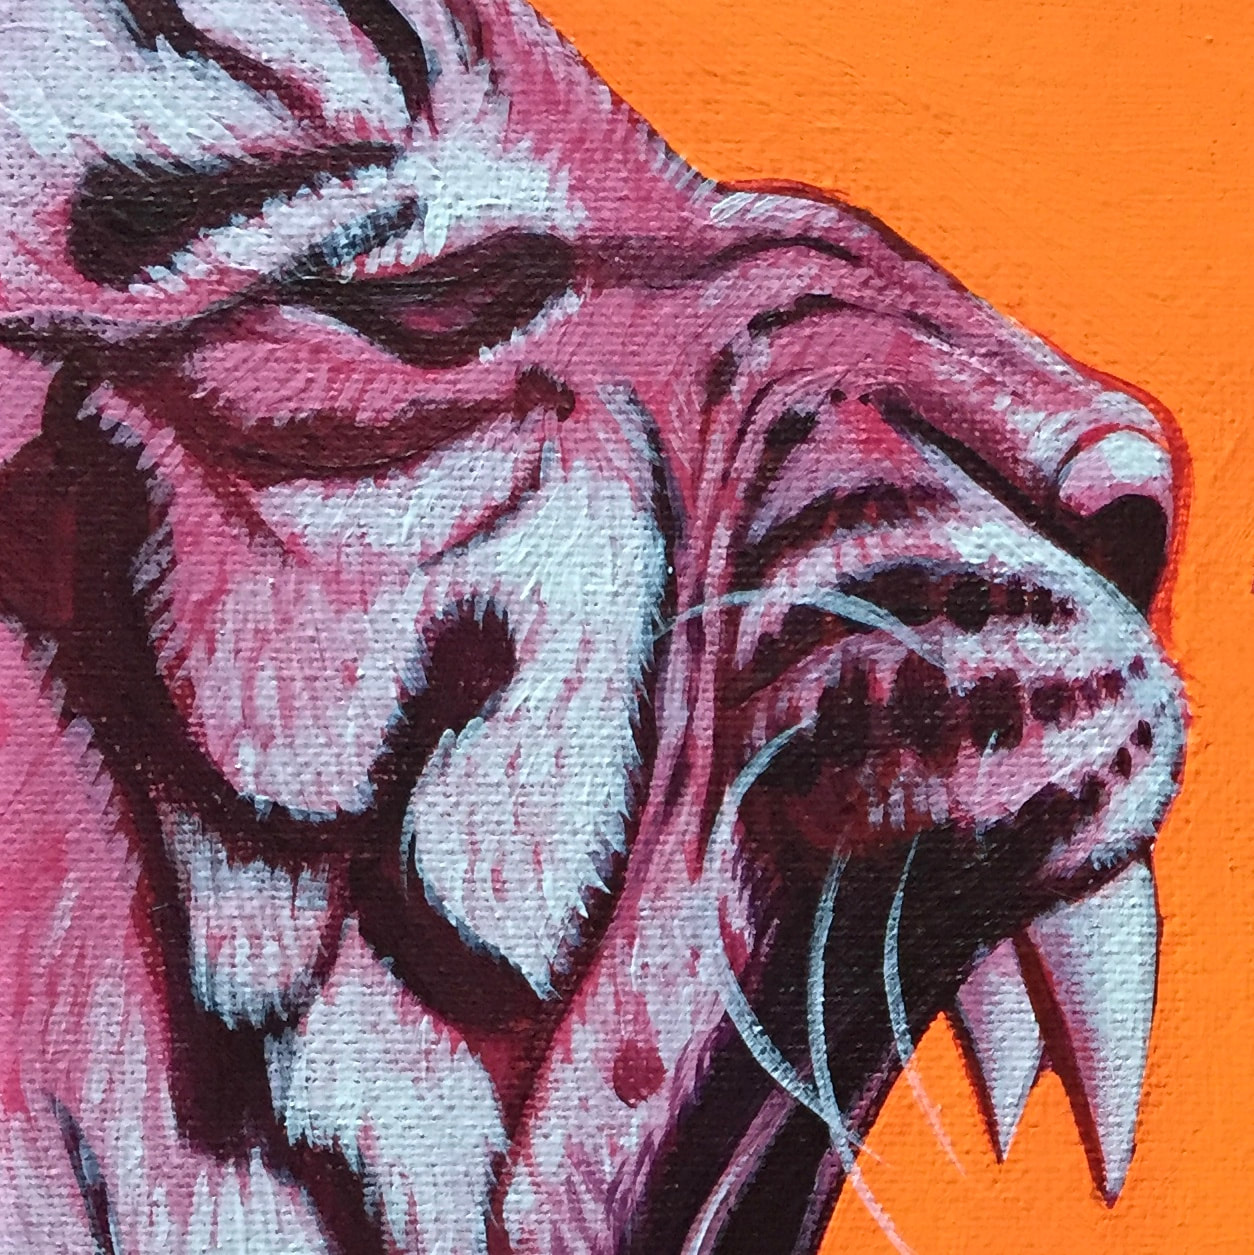 Sinisters Small & Weak (Tiger) print